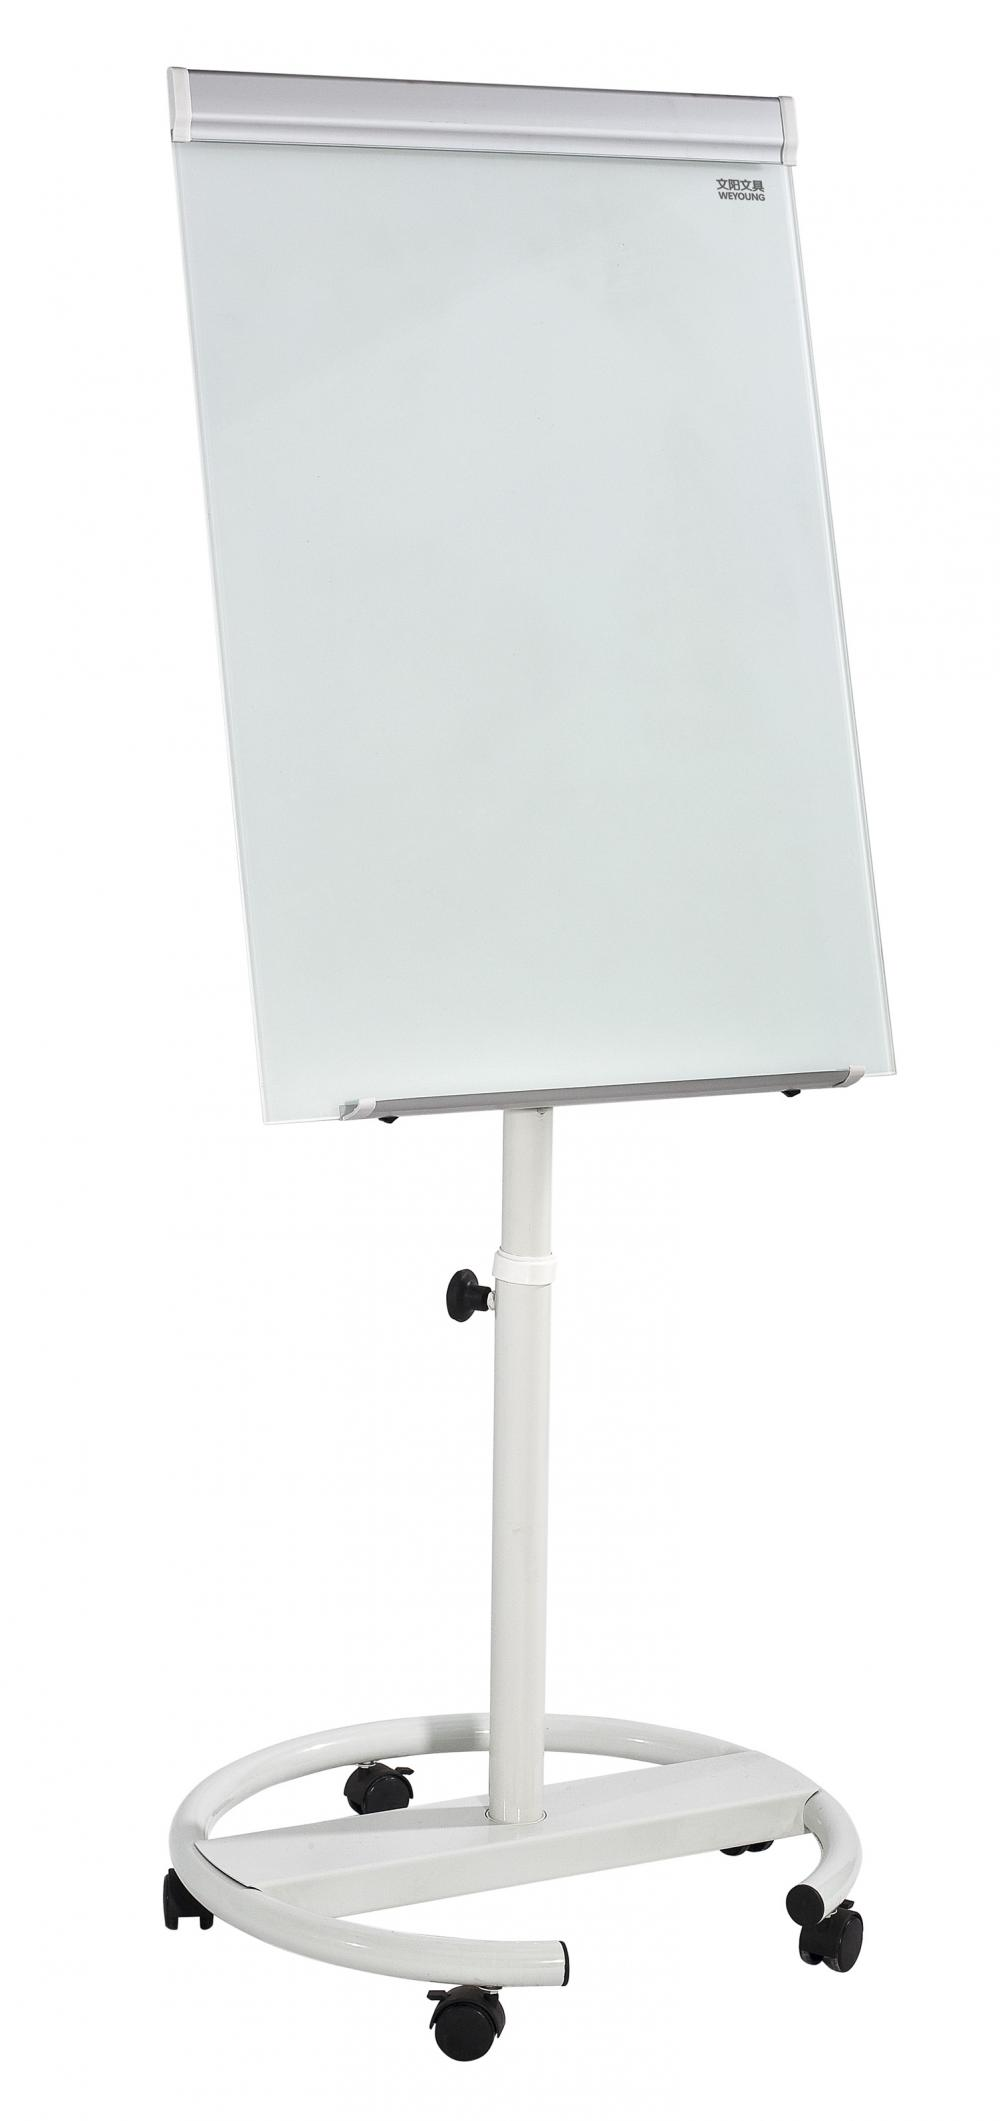 Office mobile magnetic glass flipchart easel